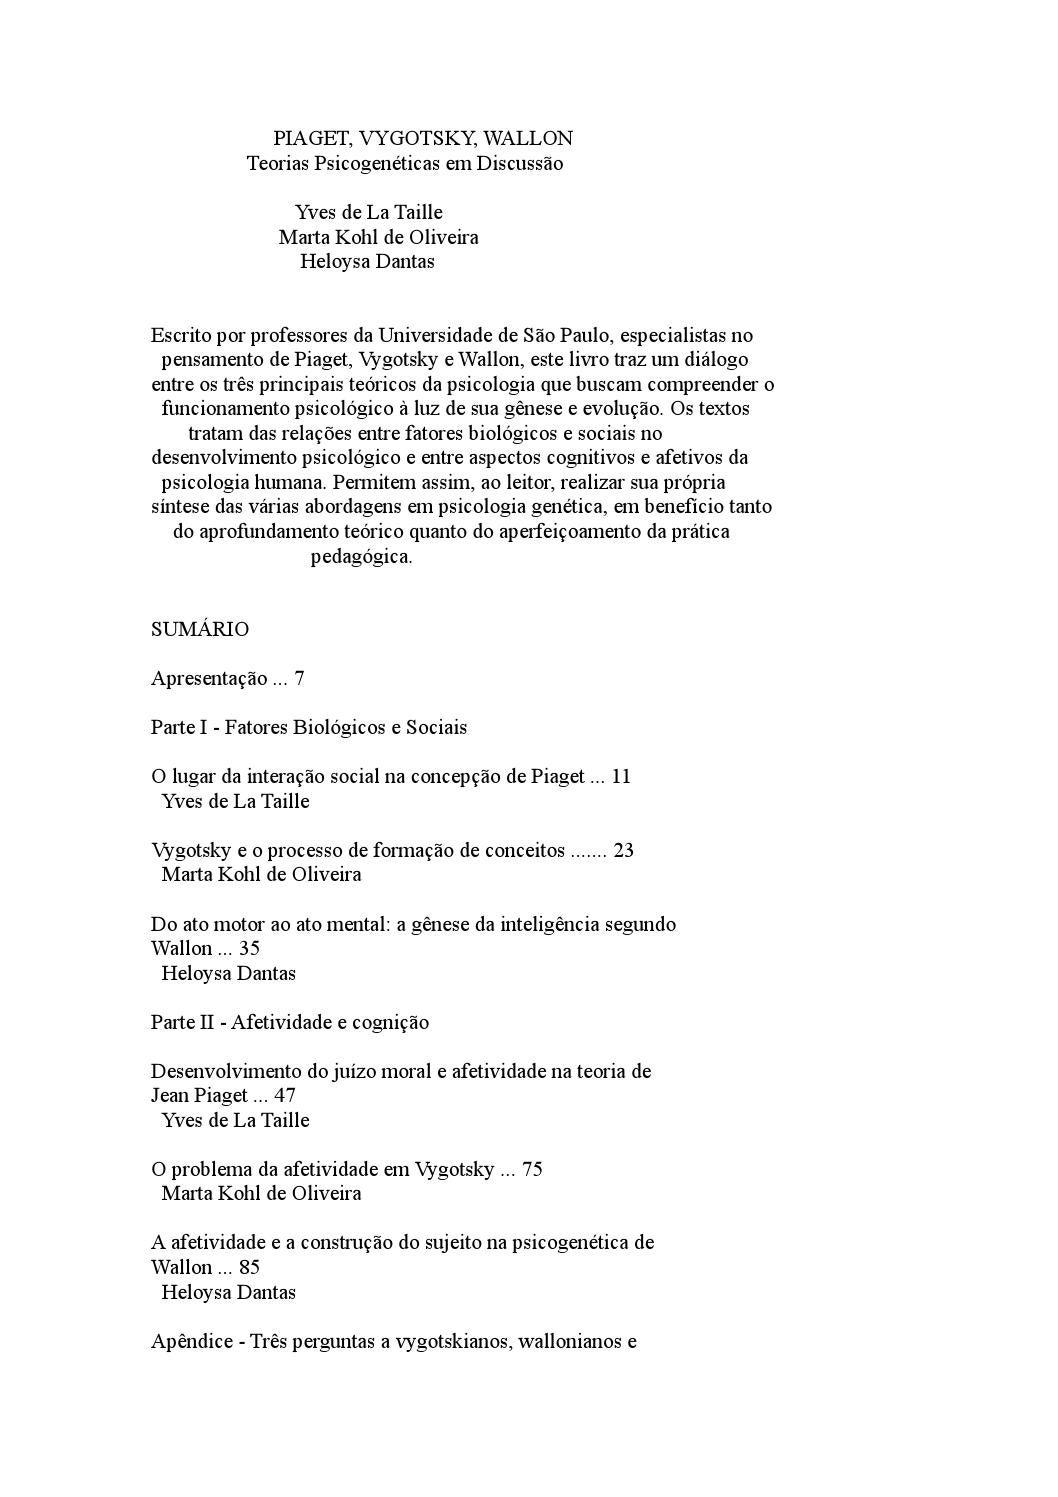 590f4a6a87d Piaget vygotsky wallon teorias psicogeneticas em discussao by Marcella  Martins - issuu